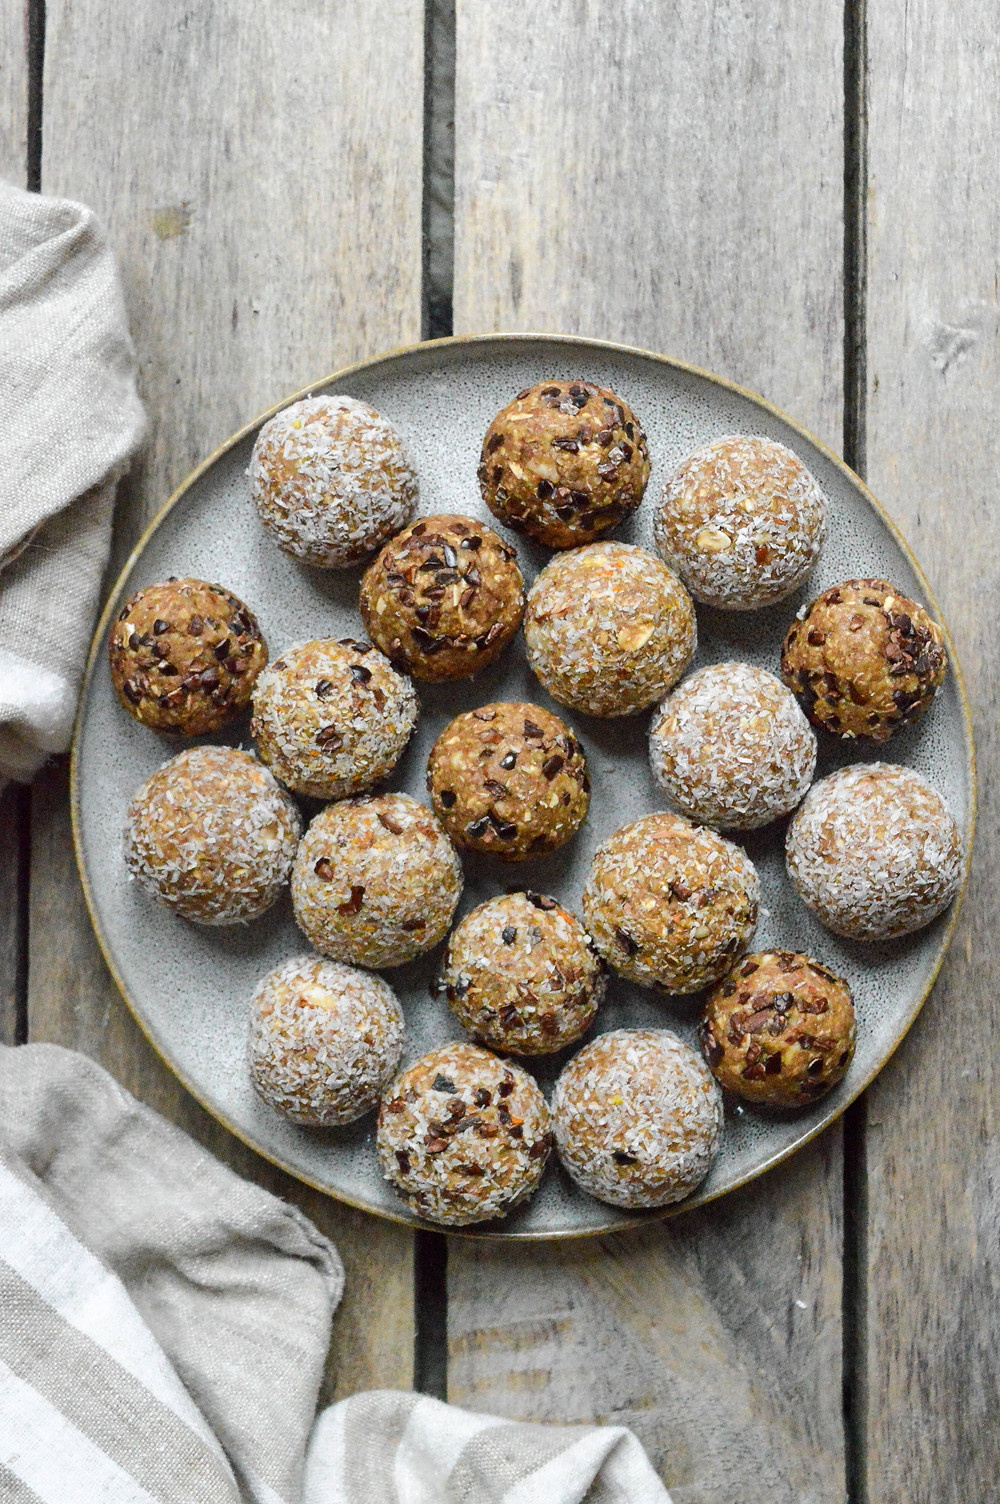 easy, no bake banana and oats energy balls with healthy nuts and maple syrup.